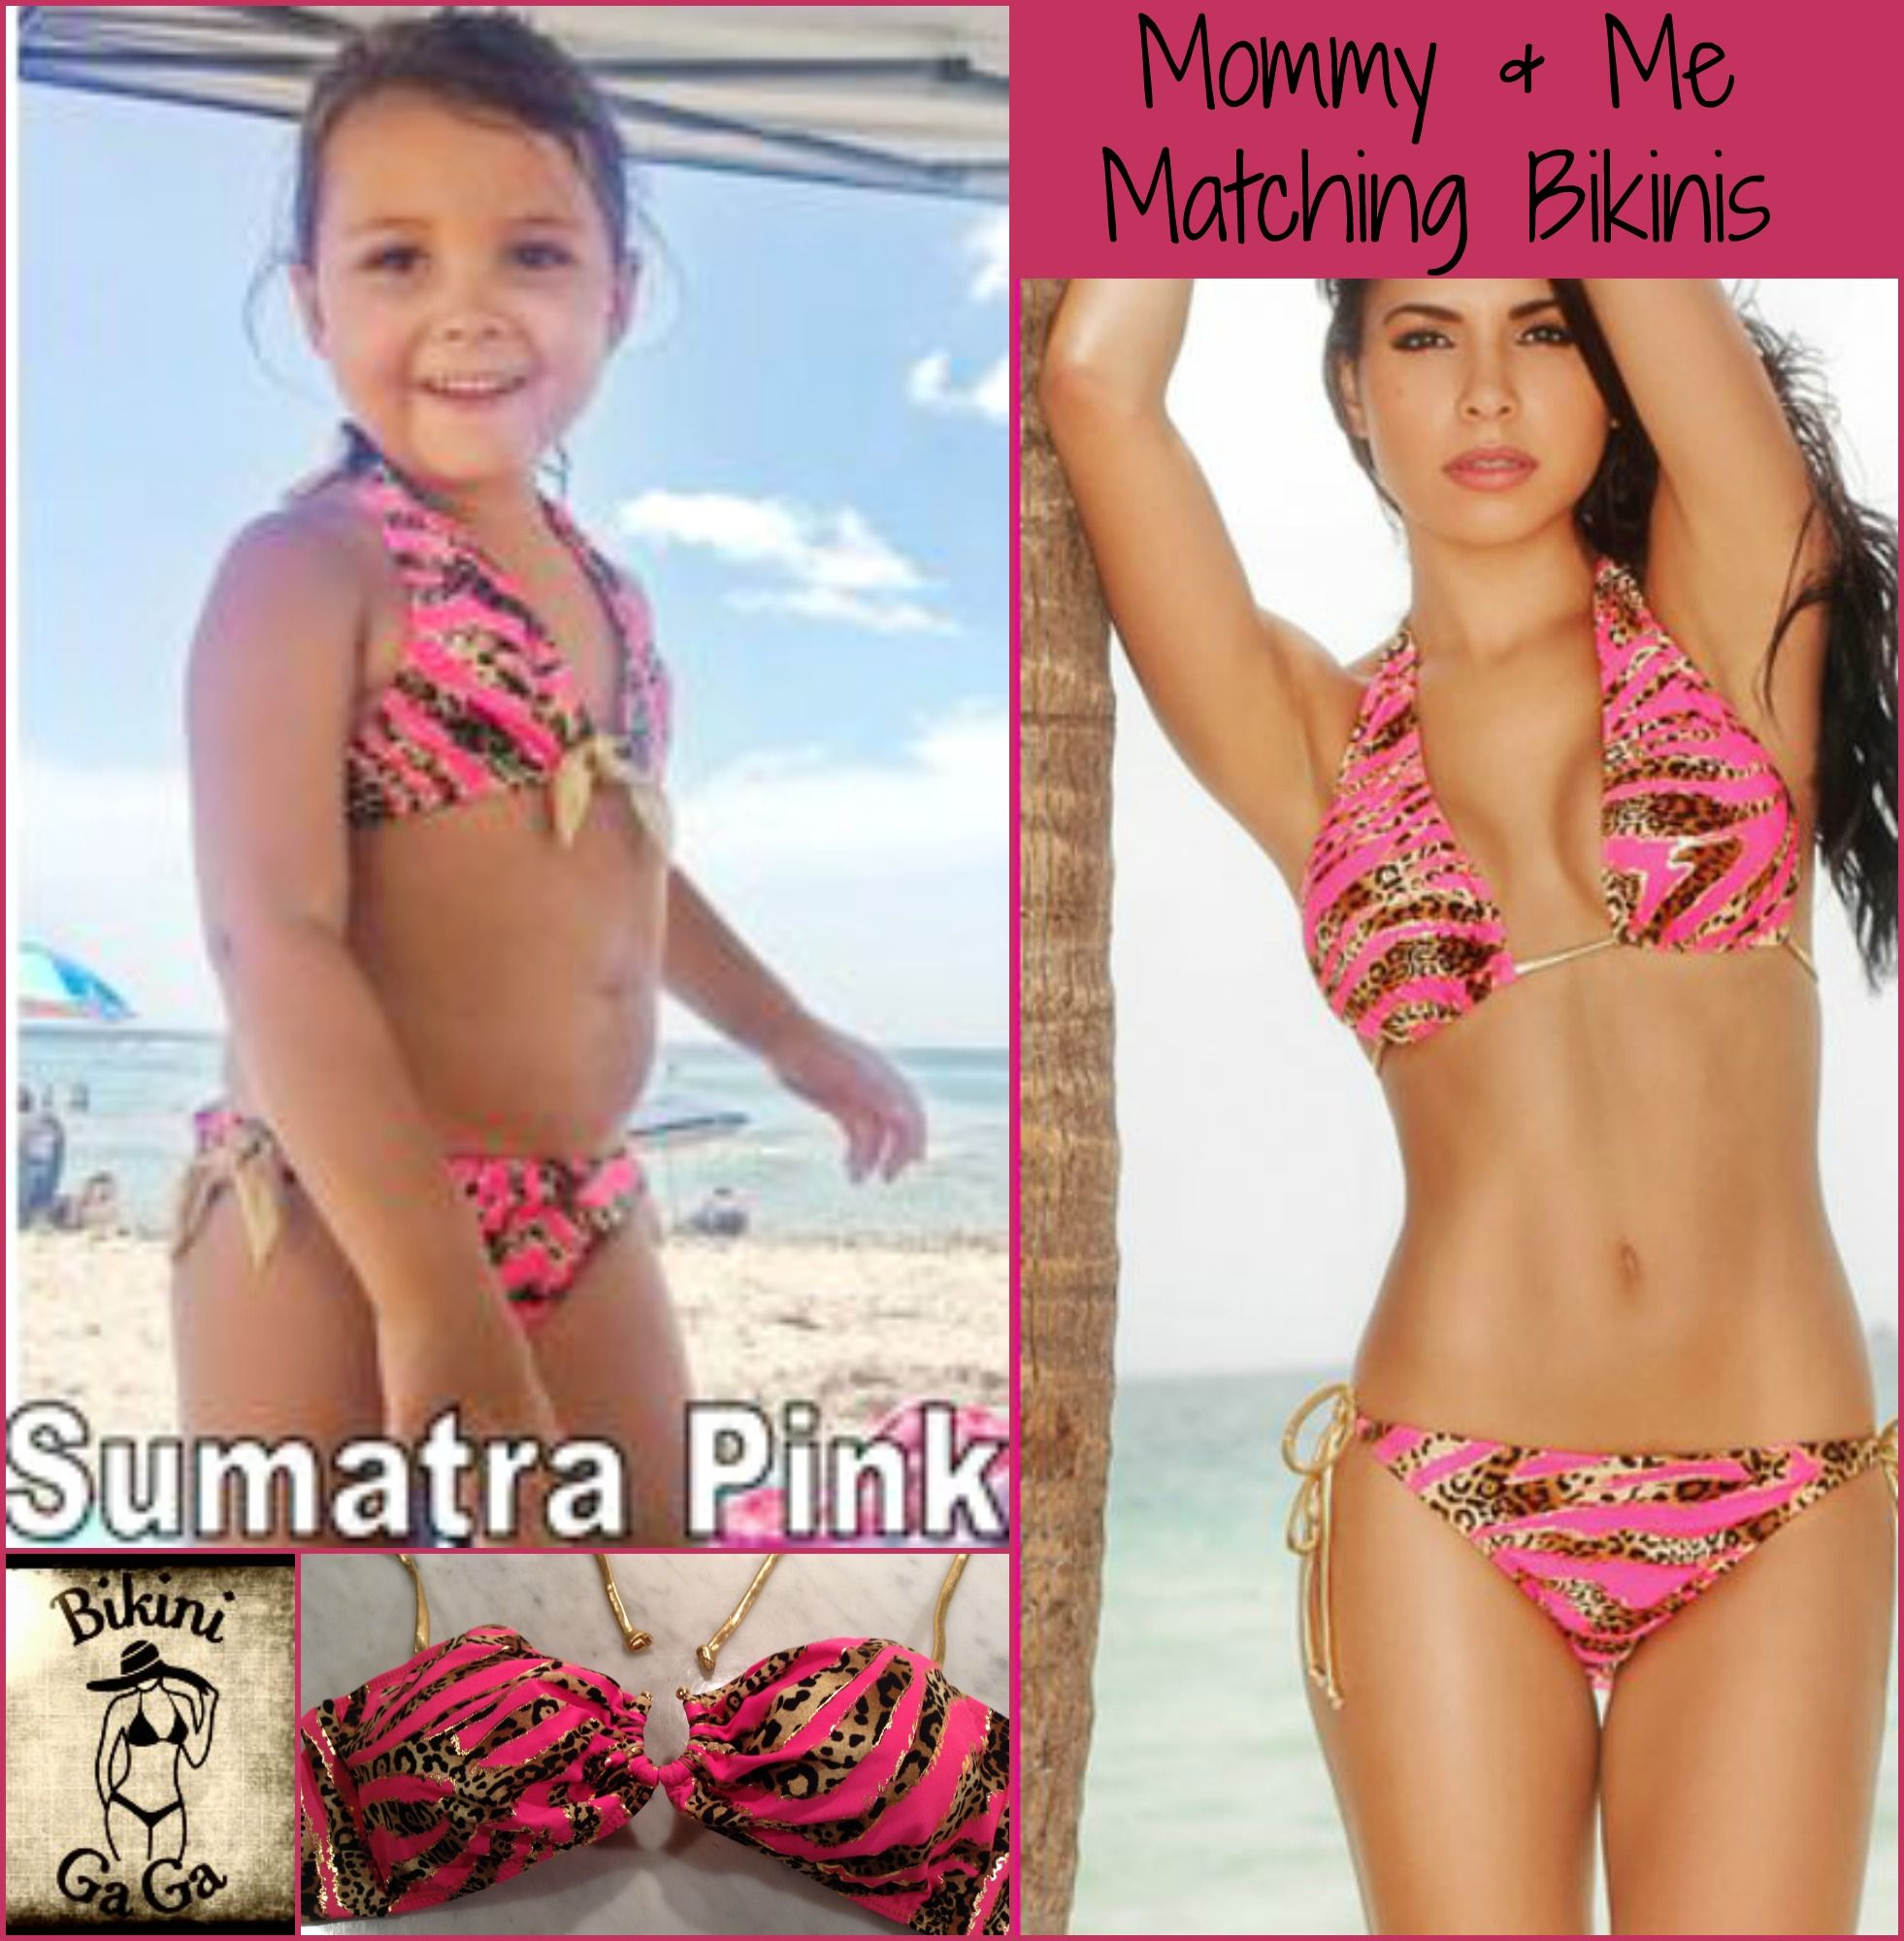 Bikinis for baby too!